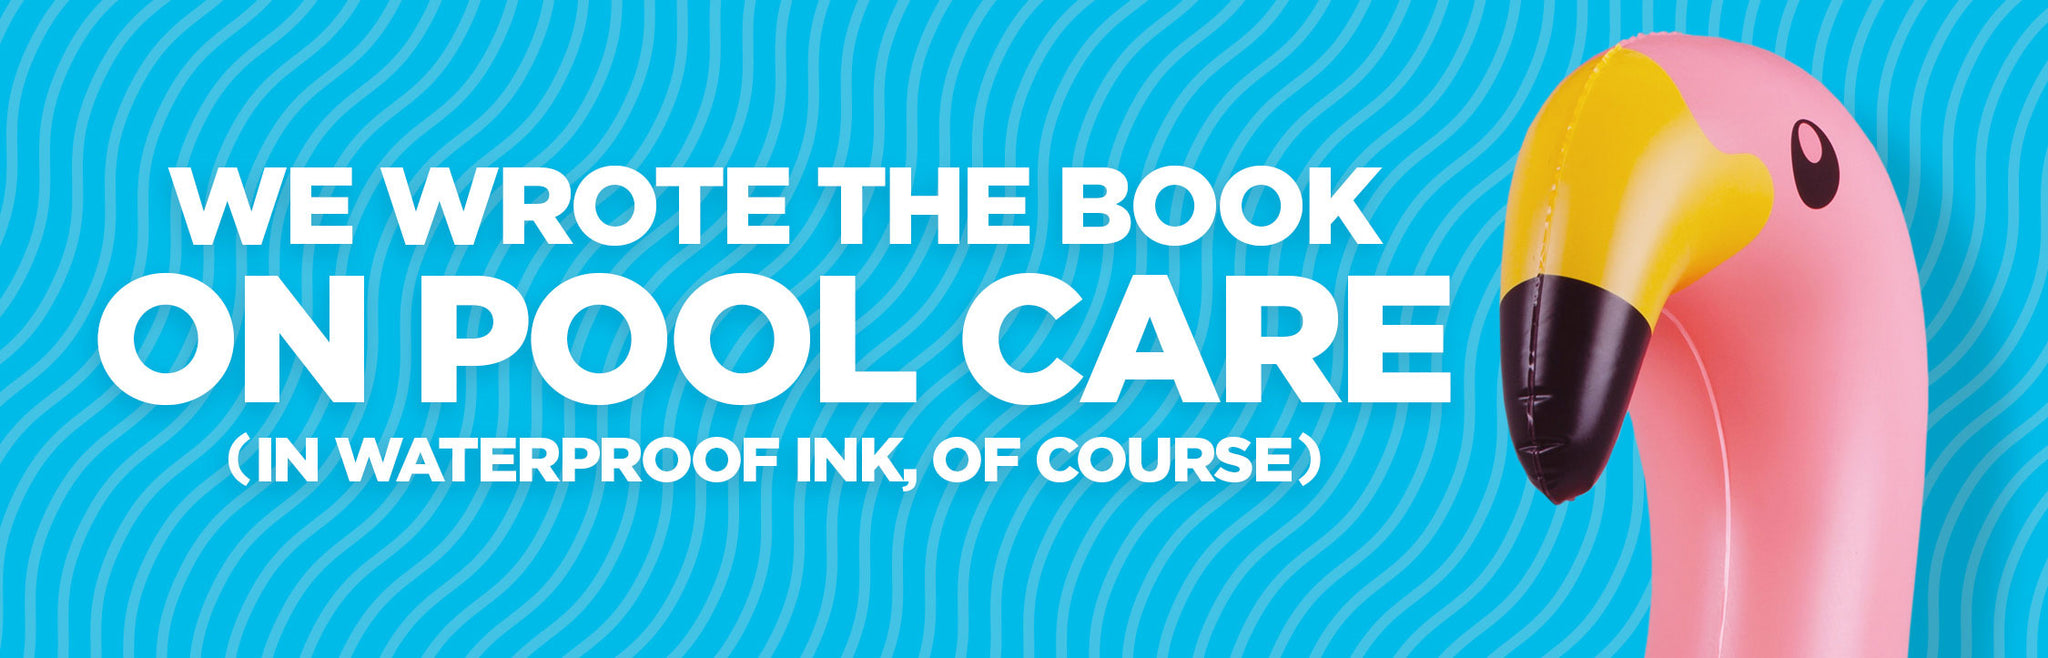 We wrote the book on pool care (in waterproof ink, of course)